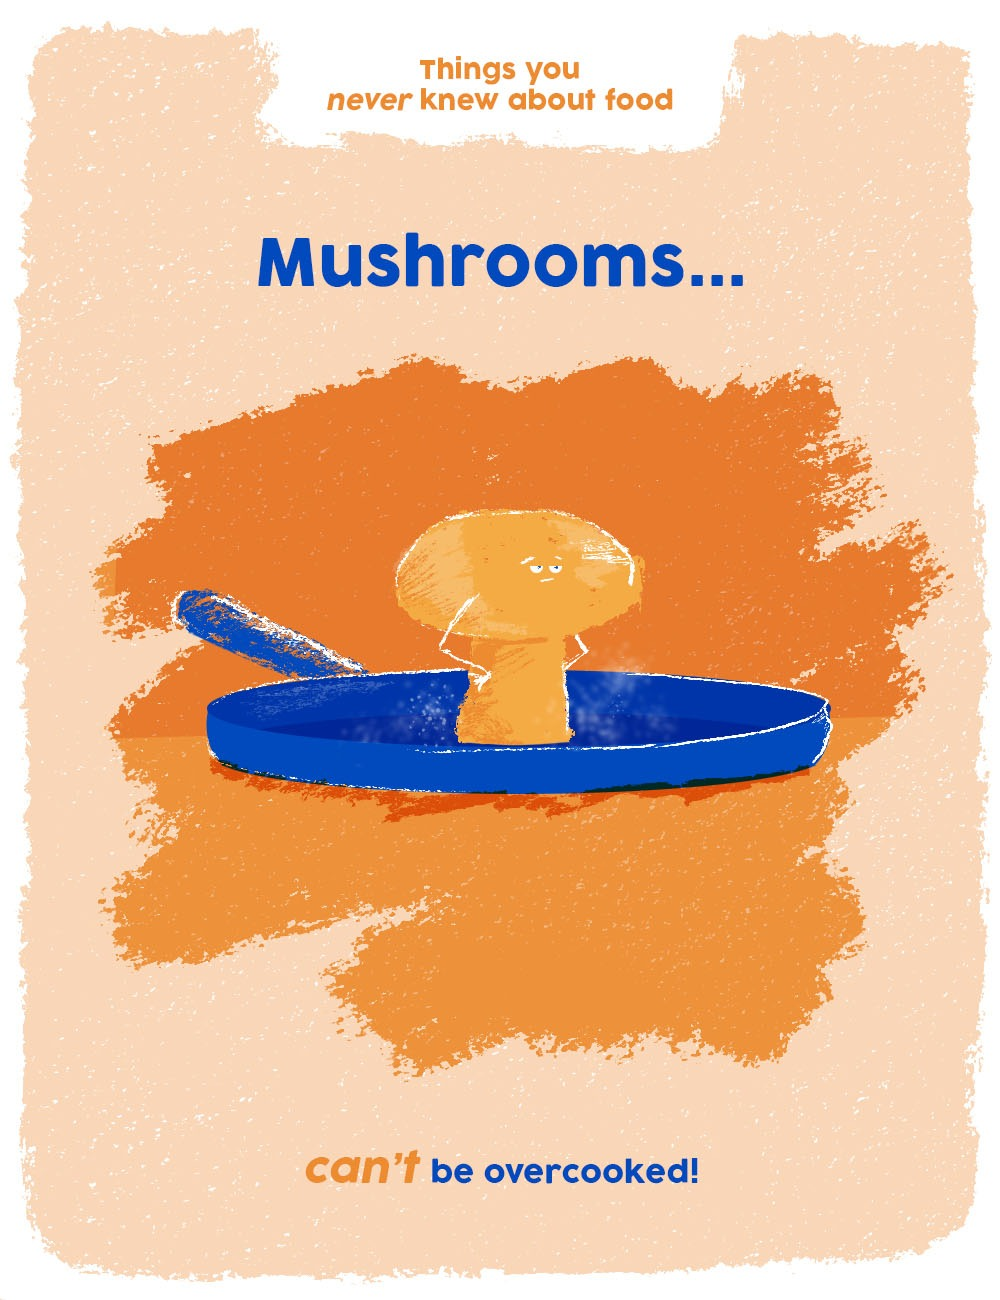 things you never knew about food graphics - mushrooms can't be overcooked